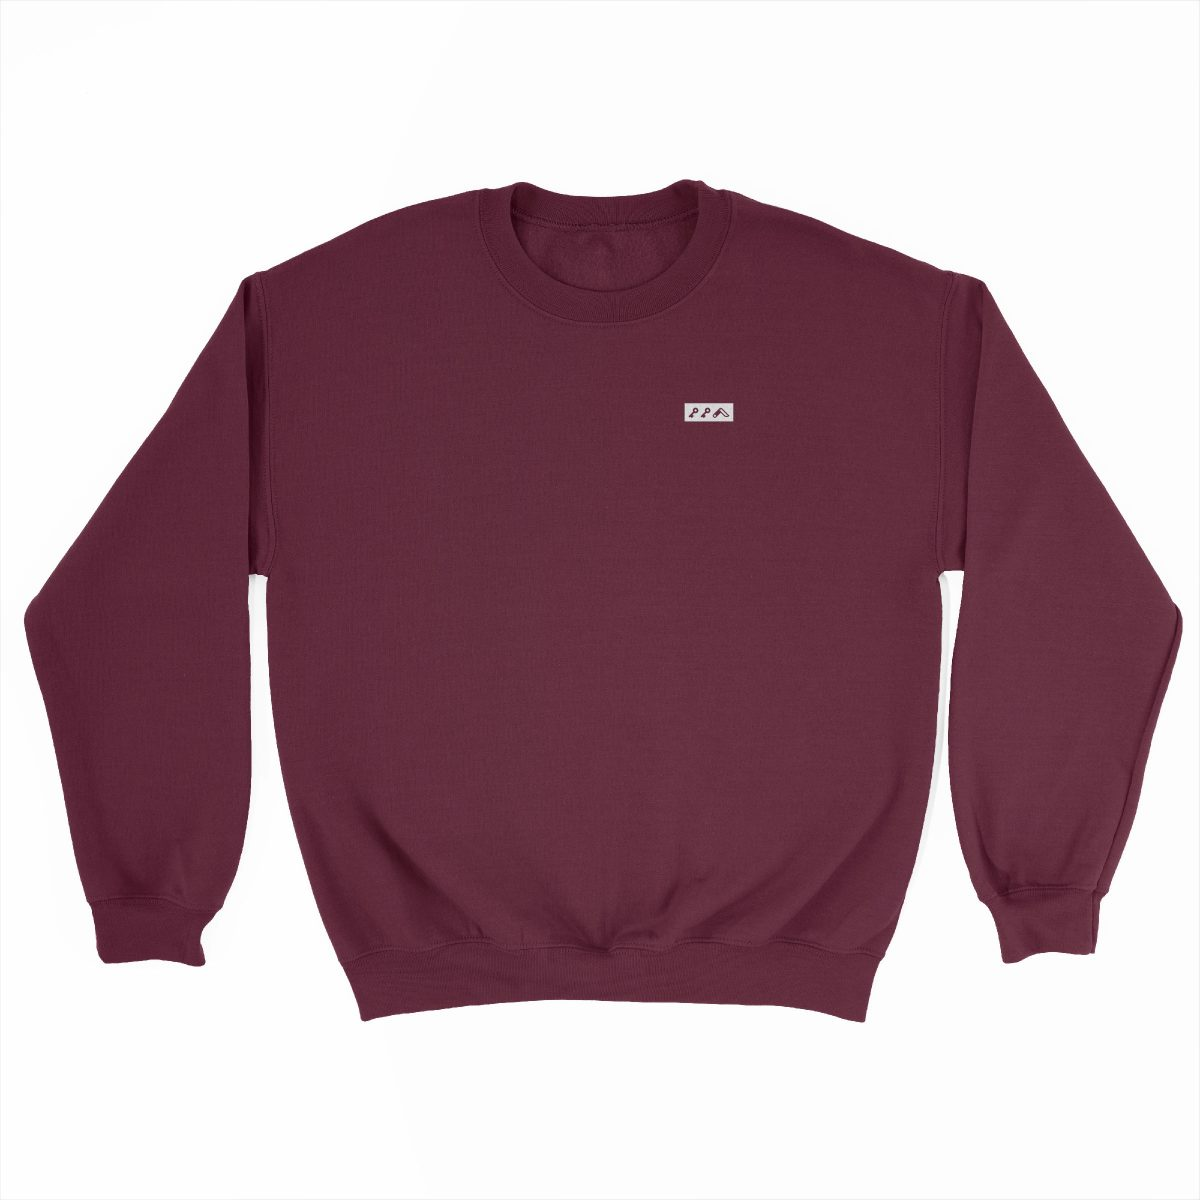 KIKICUTT white icon on a maroon super soft sweatshirt at kikicutt.com